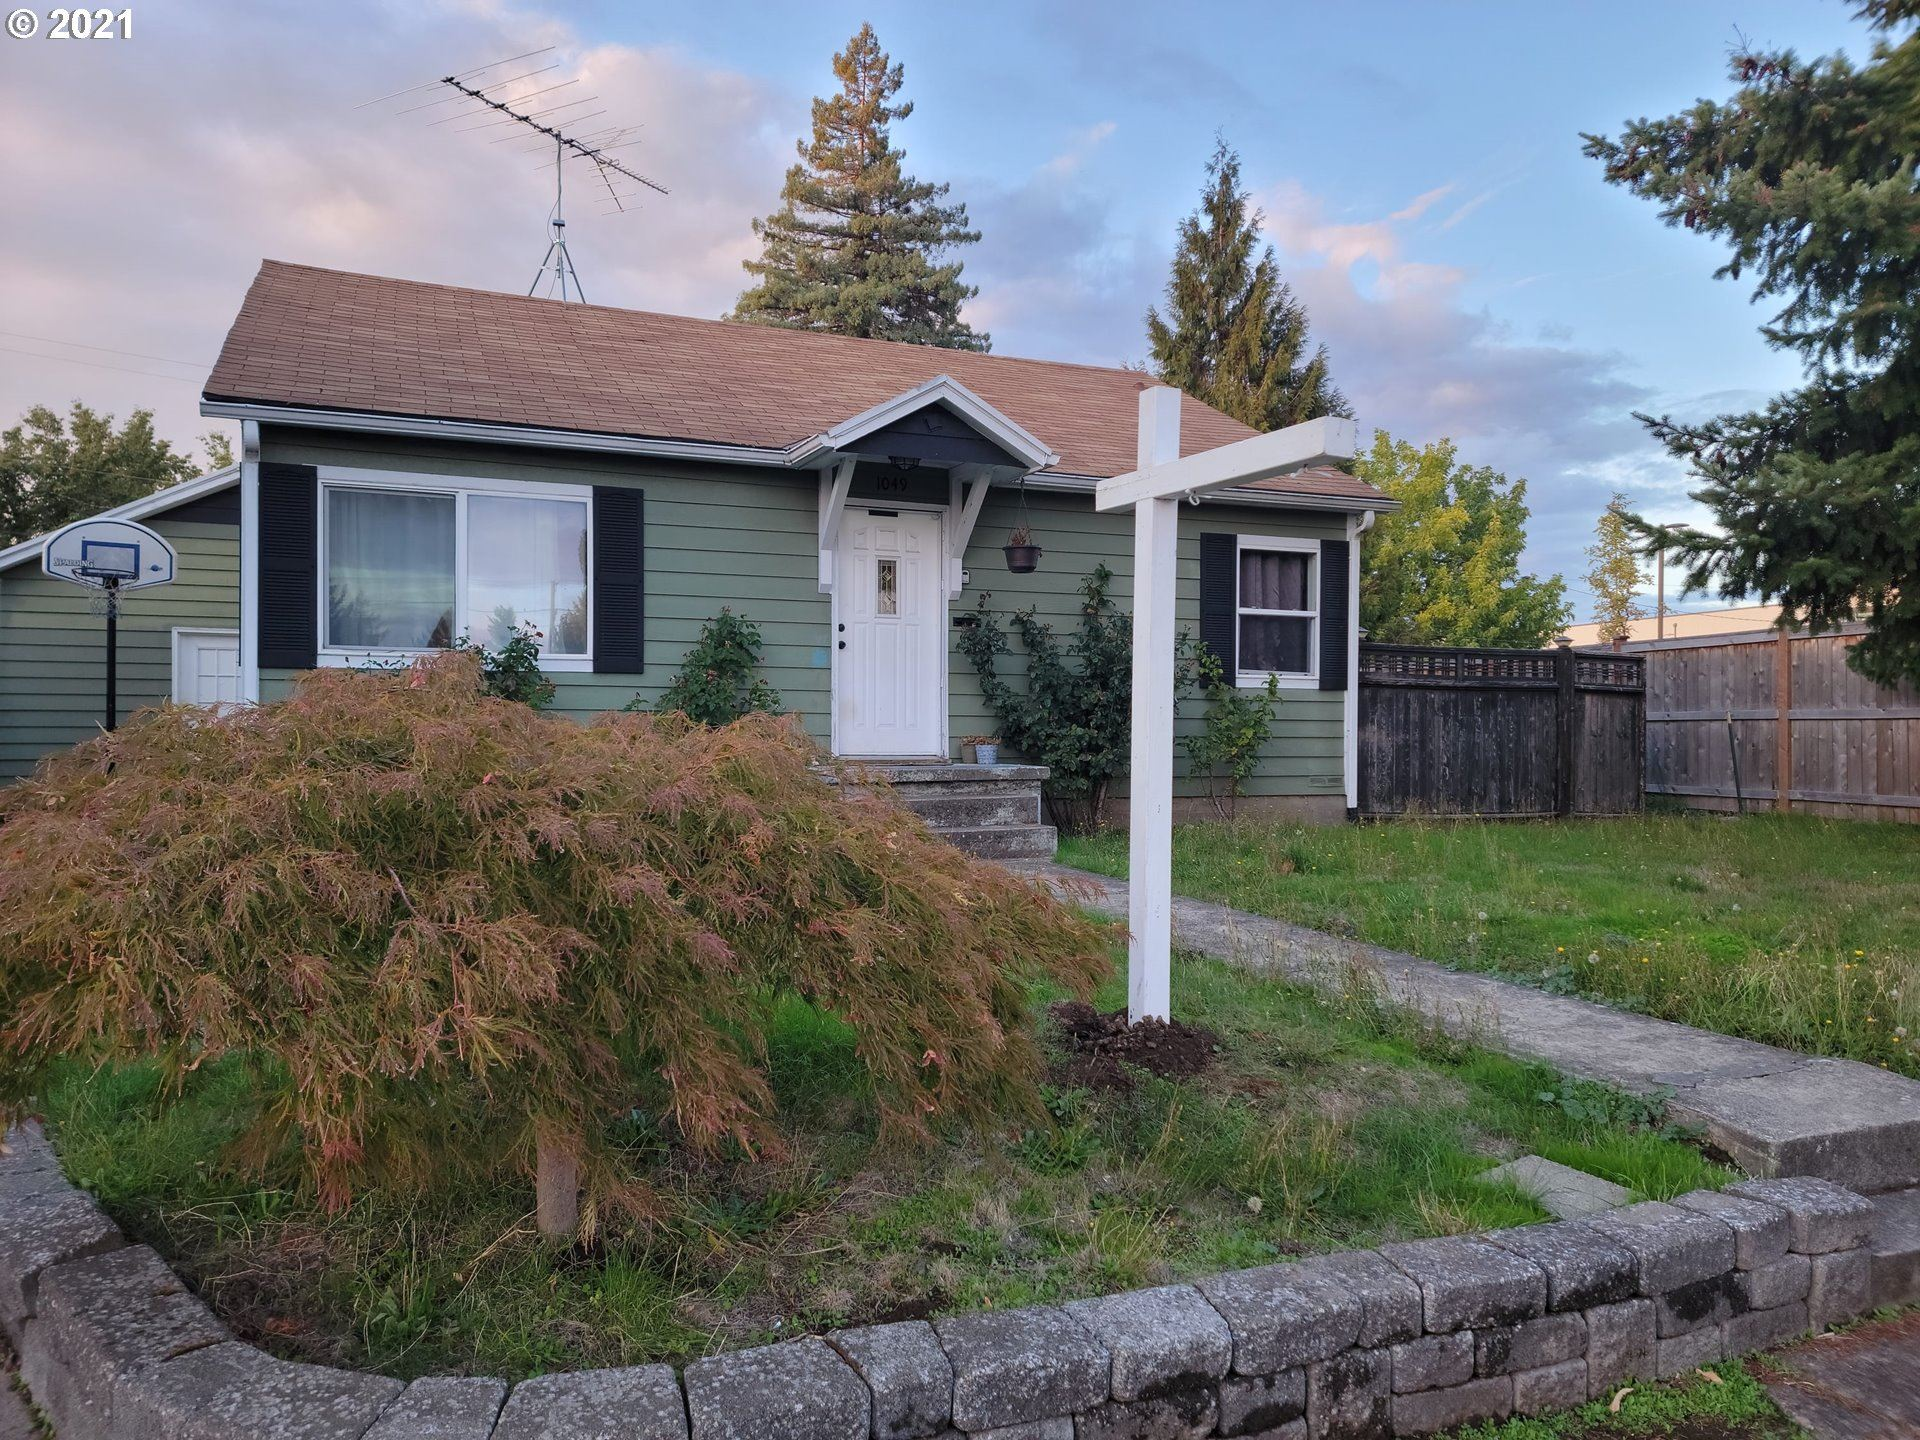 Photo of 1049 2nd ST, Salem, OR 97304 (MLS # 21421180)